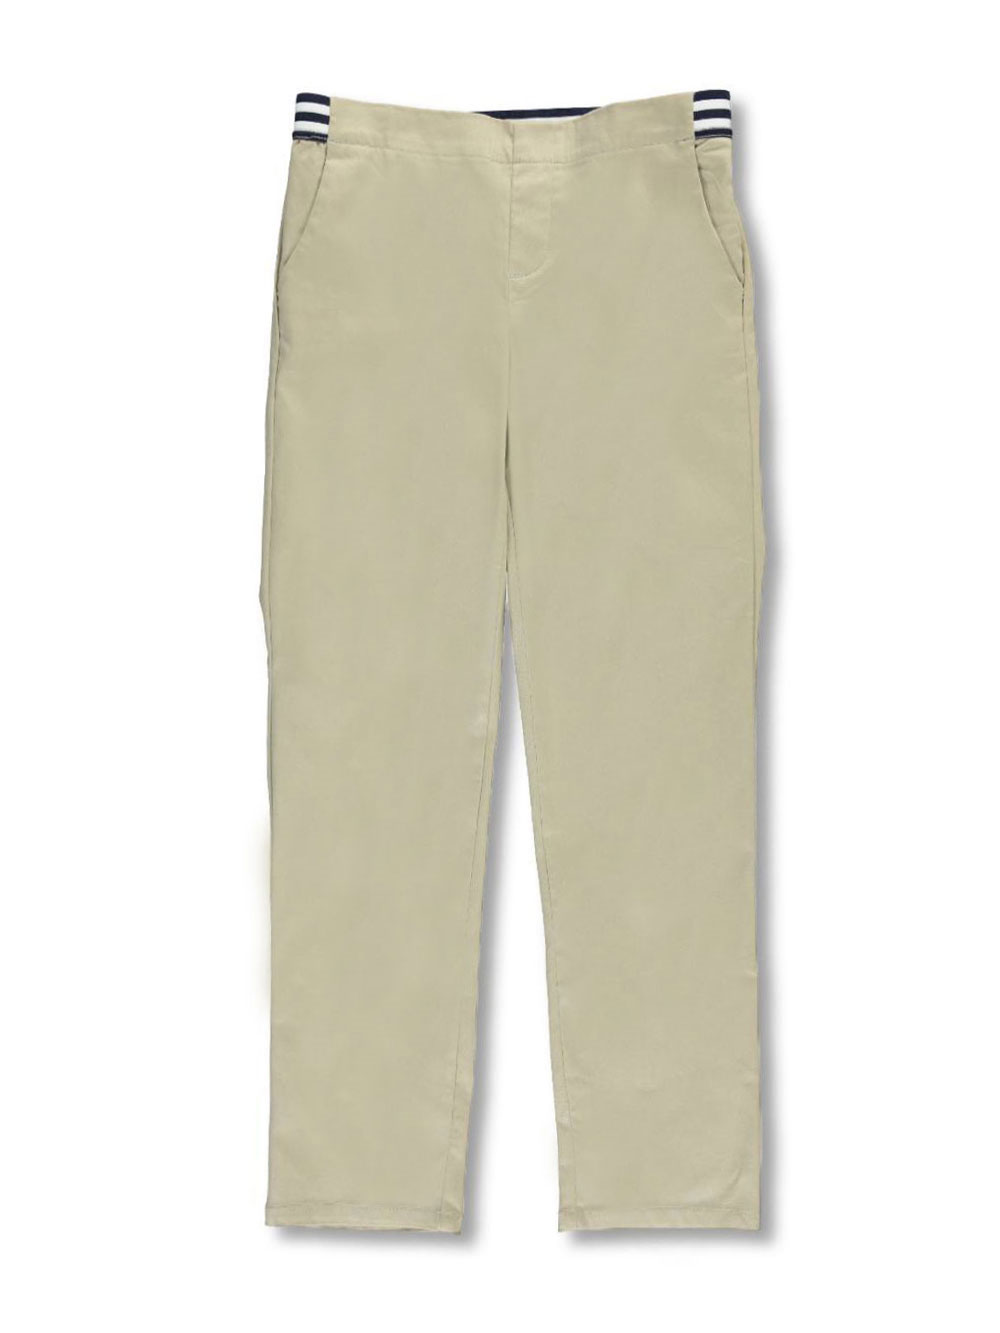 Size 18 Pants for Girls